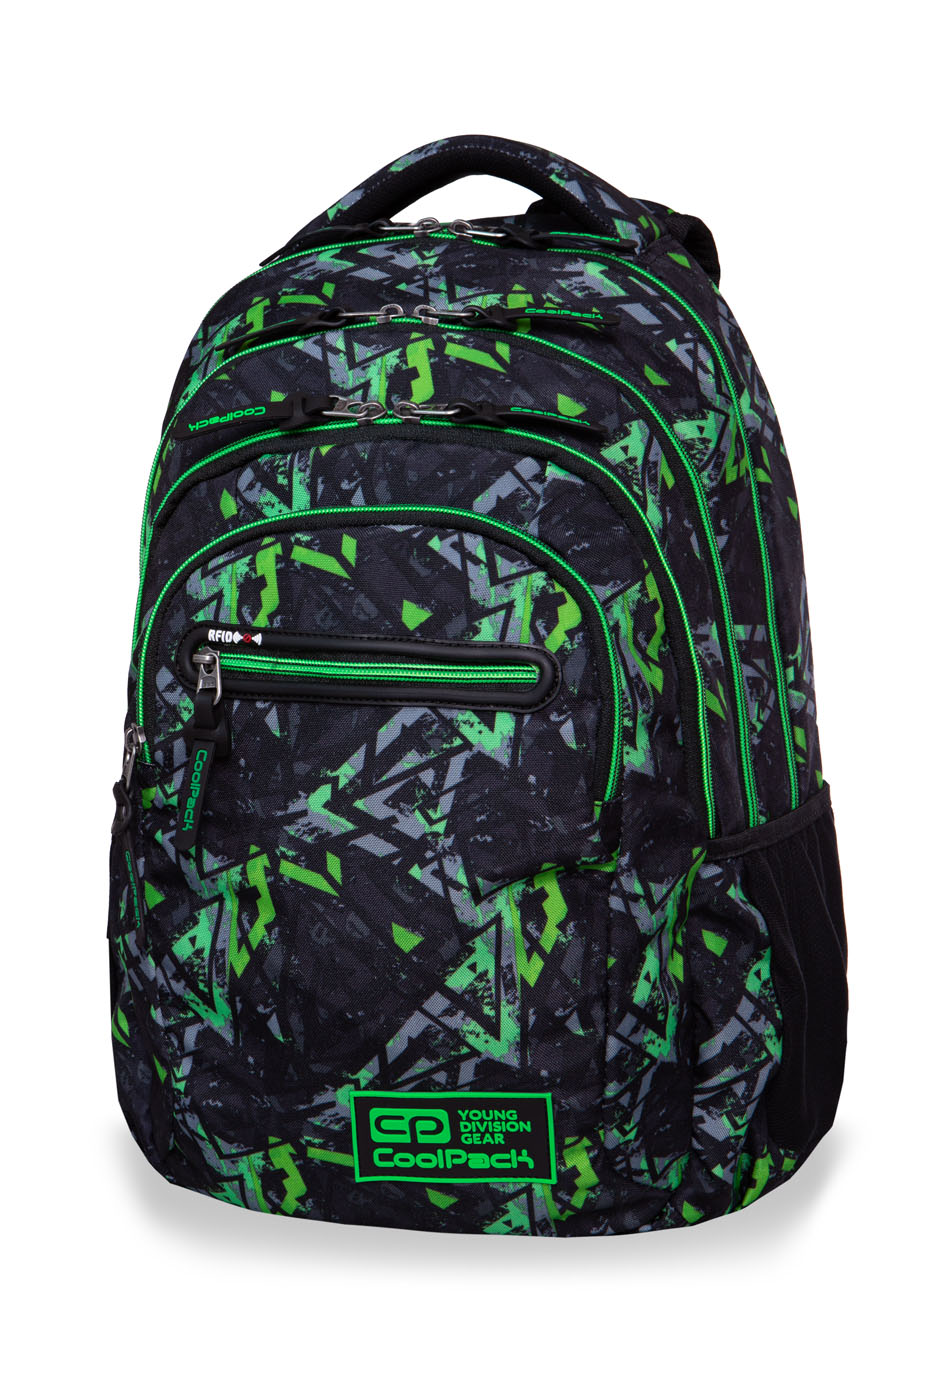 Coolpack - college tech - youth backpack - electric green